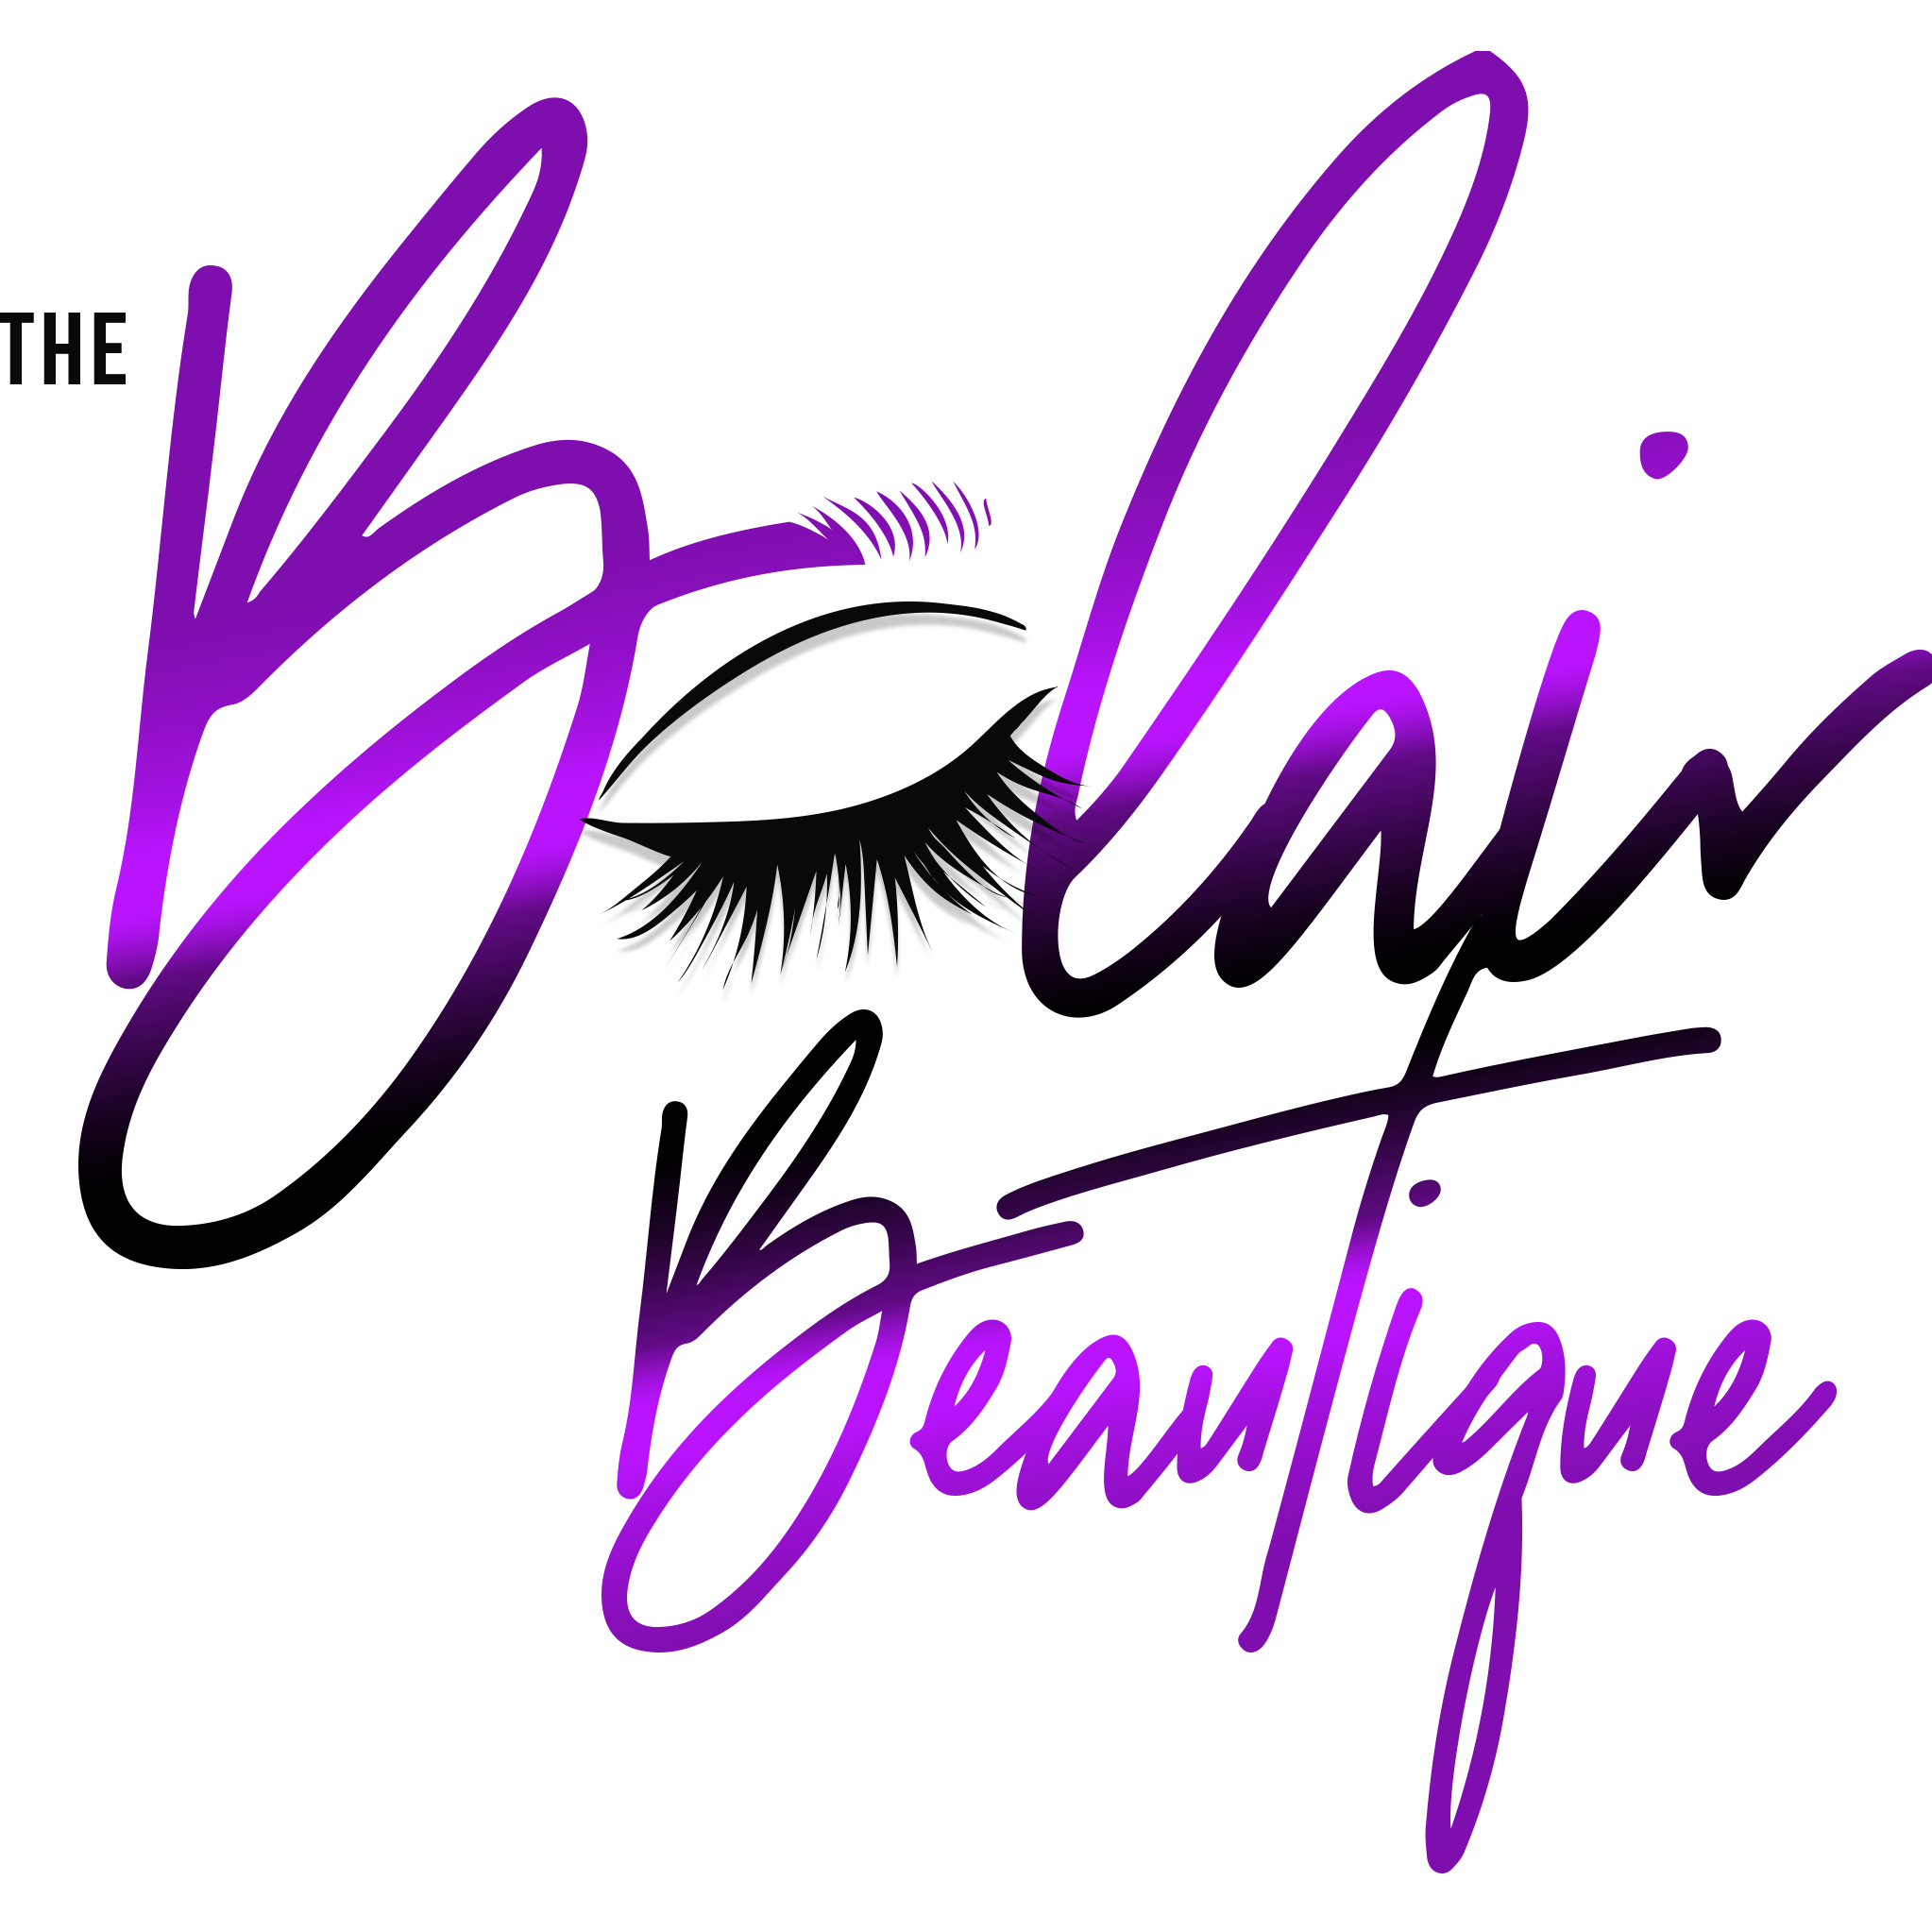 The Belair Beautique